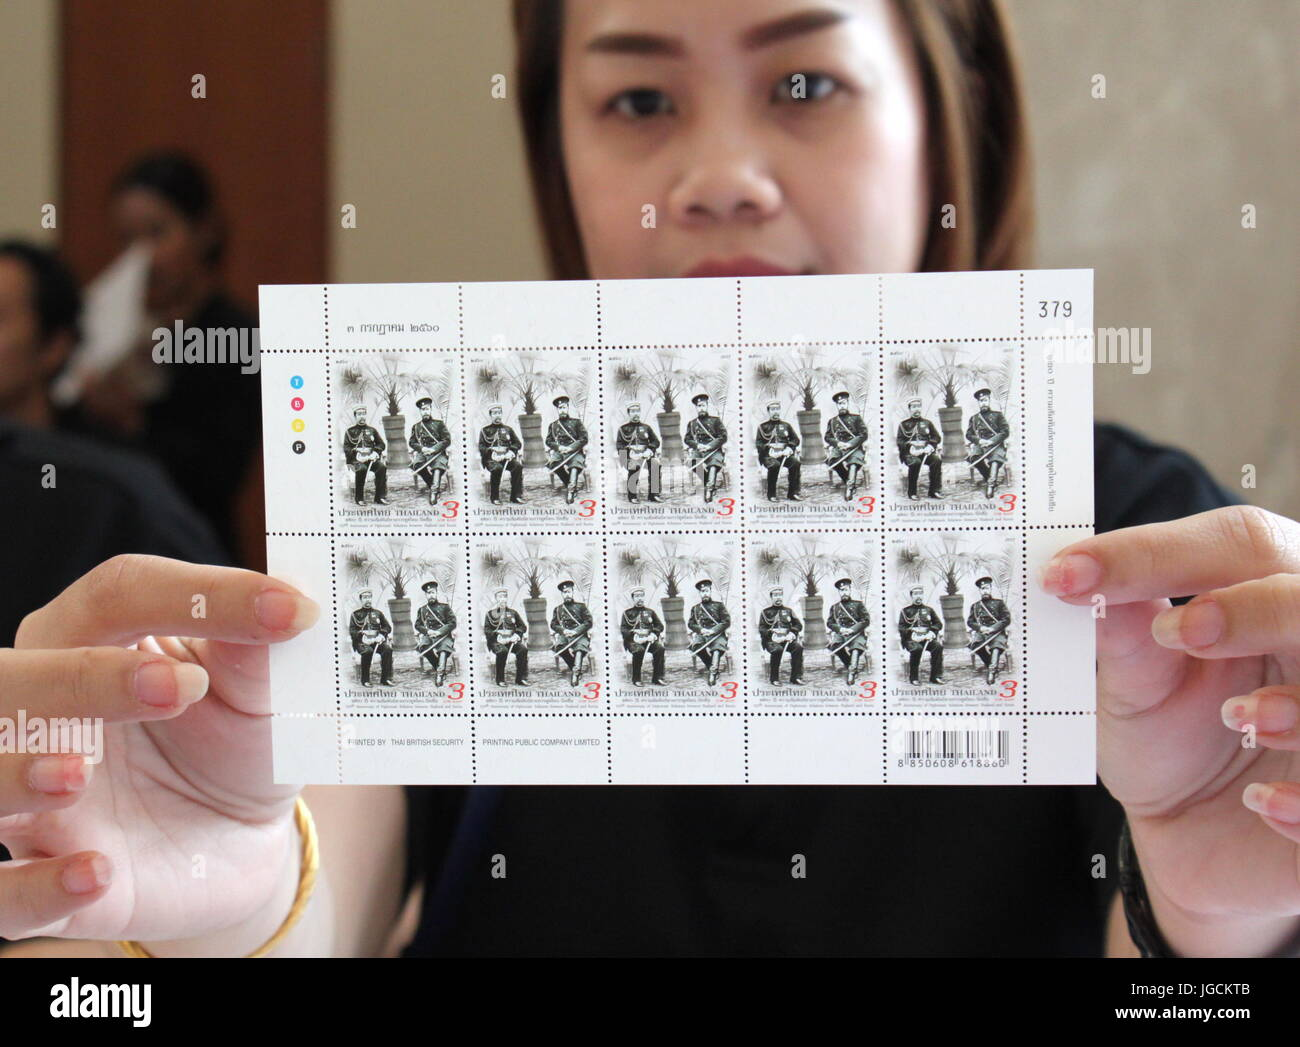 Bangkok, Thailand. 6th July, 2017. A stamp featuring images of Emperor Nicholas II of Russia and Monarch Chulalongkorn - Stock Image